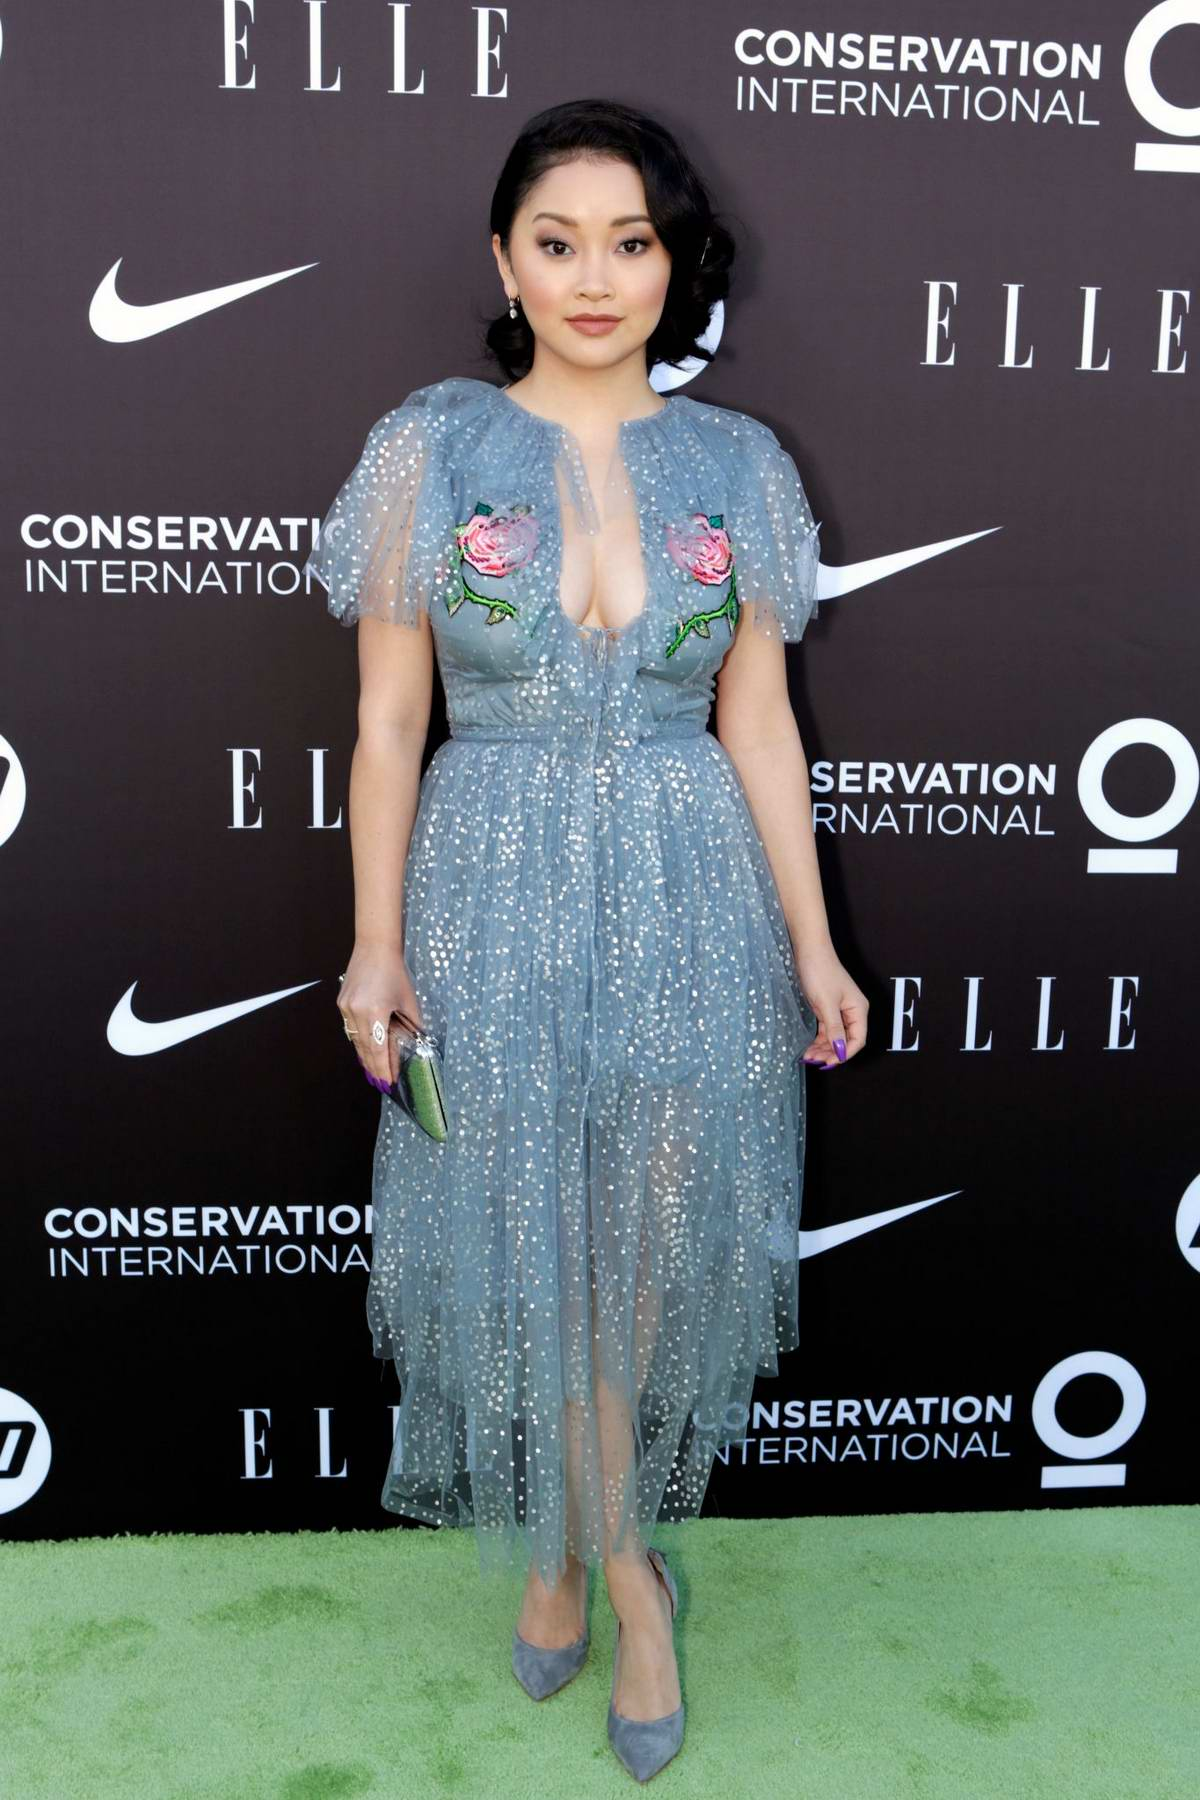 Lana Condor attends the Women In Conservation event at Milk Studios in Hollywood, California